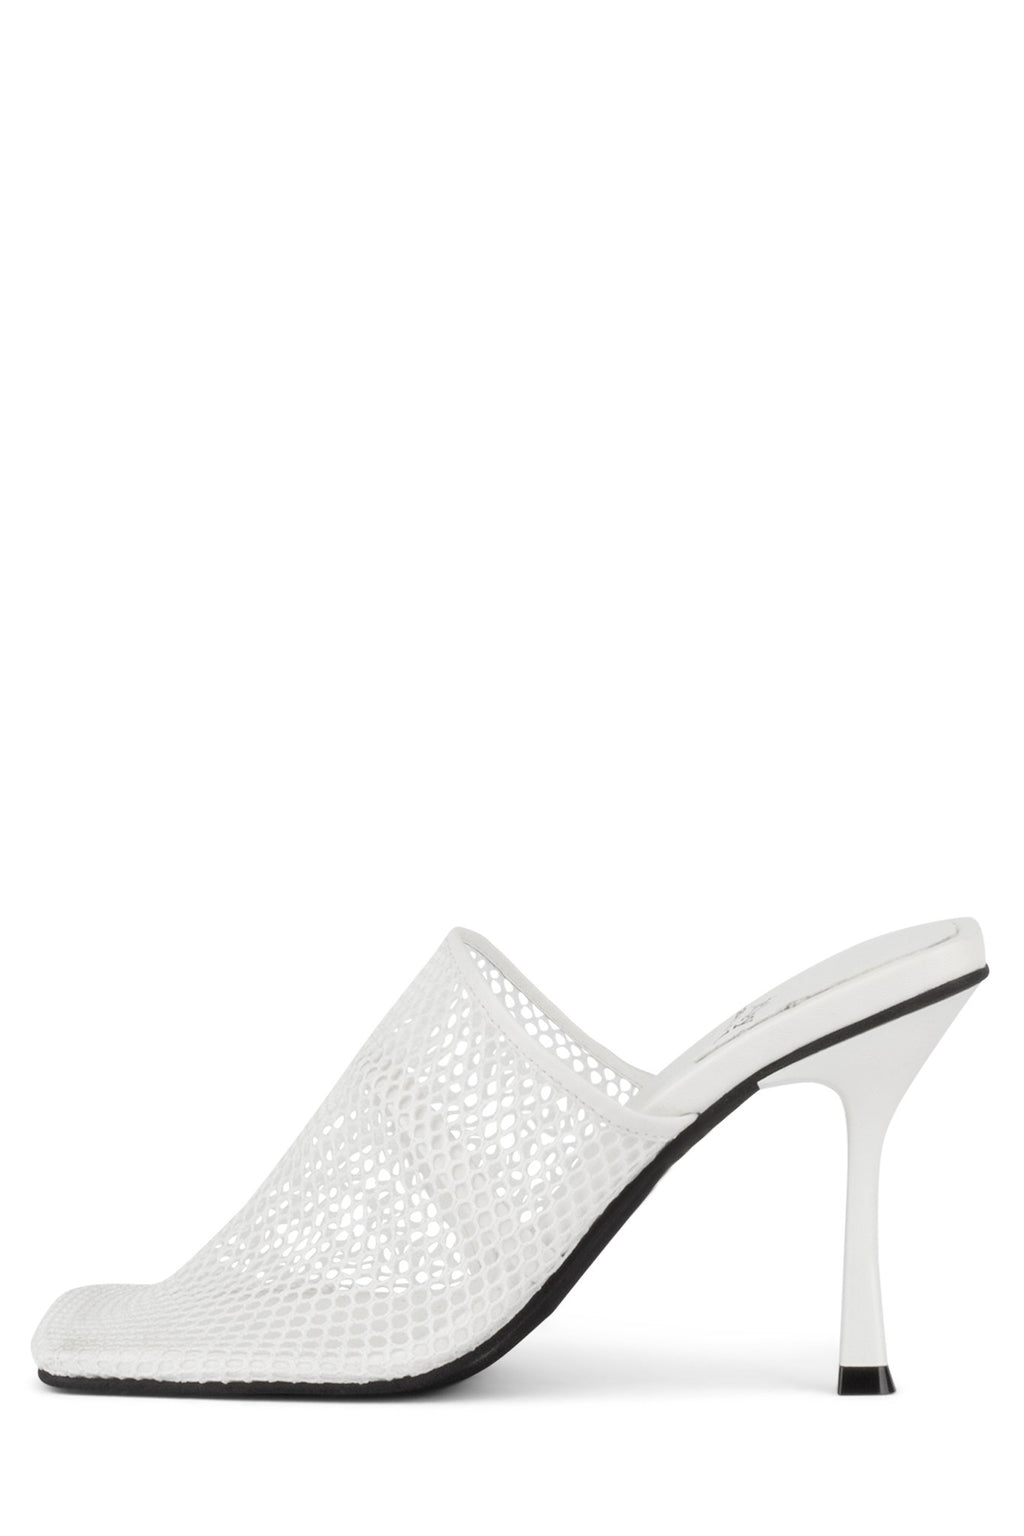 DYER Heeled Mule YYH White Mesh 6